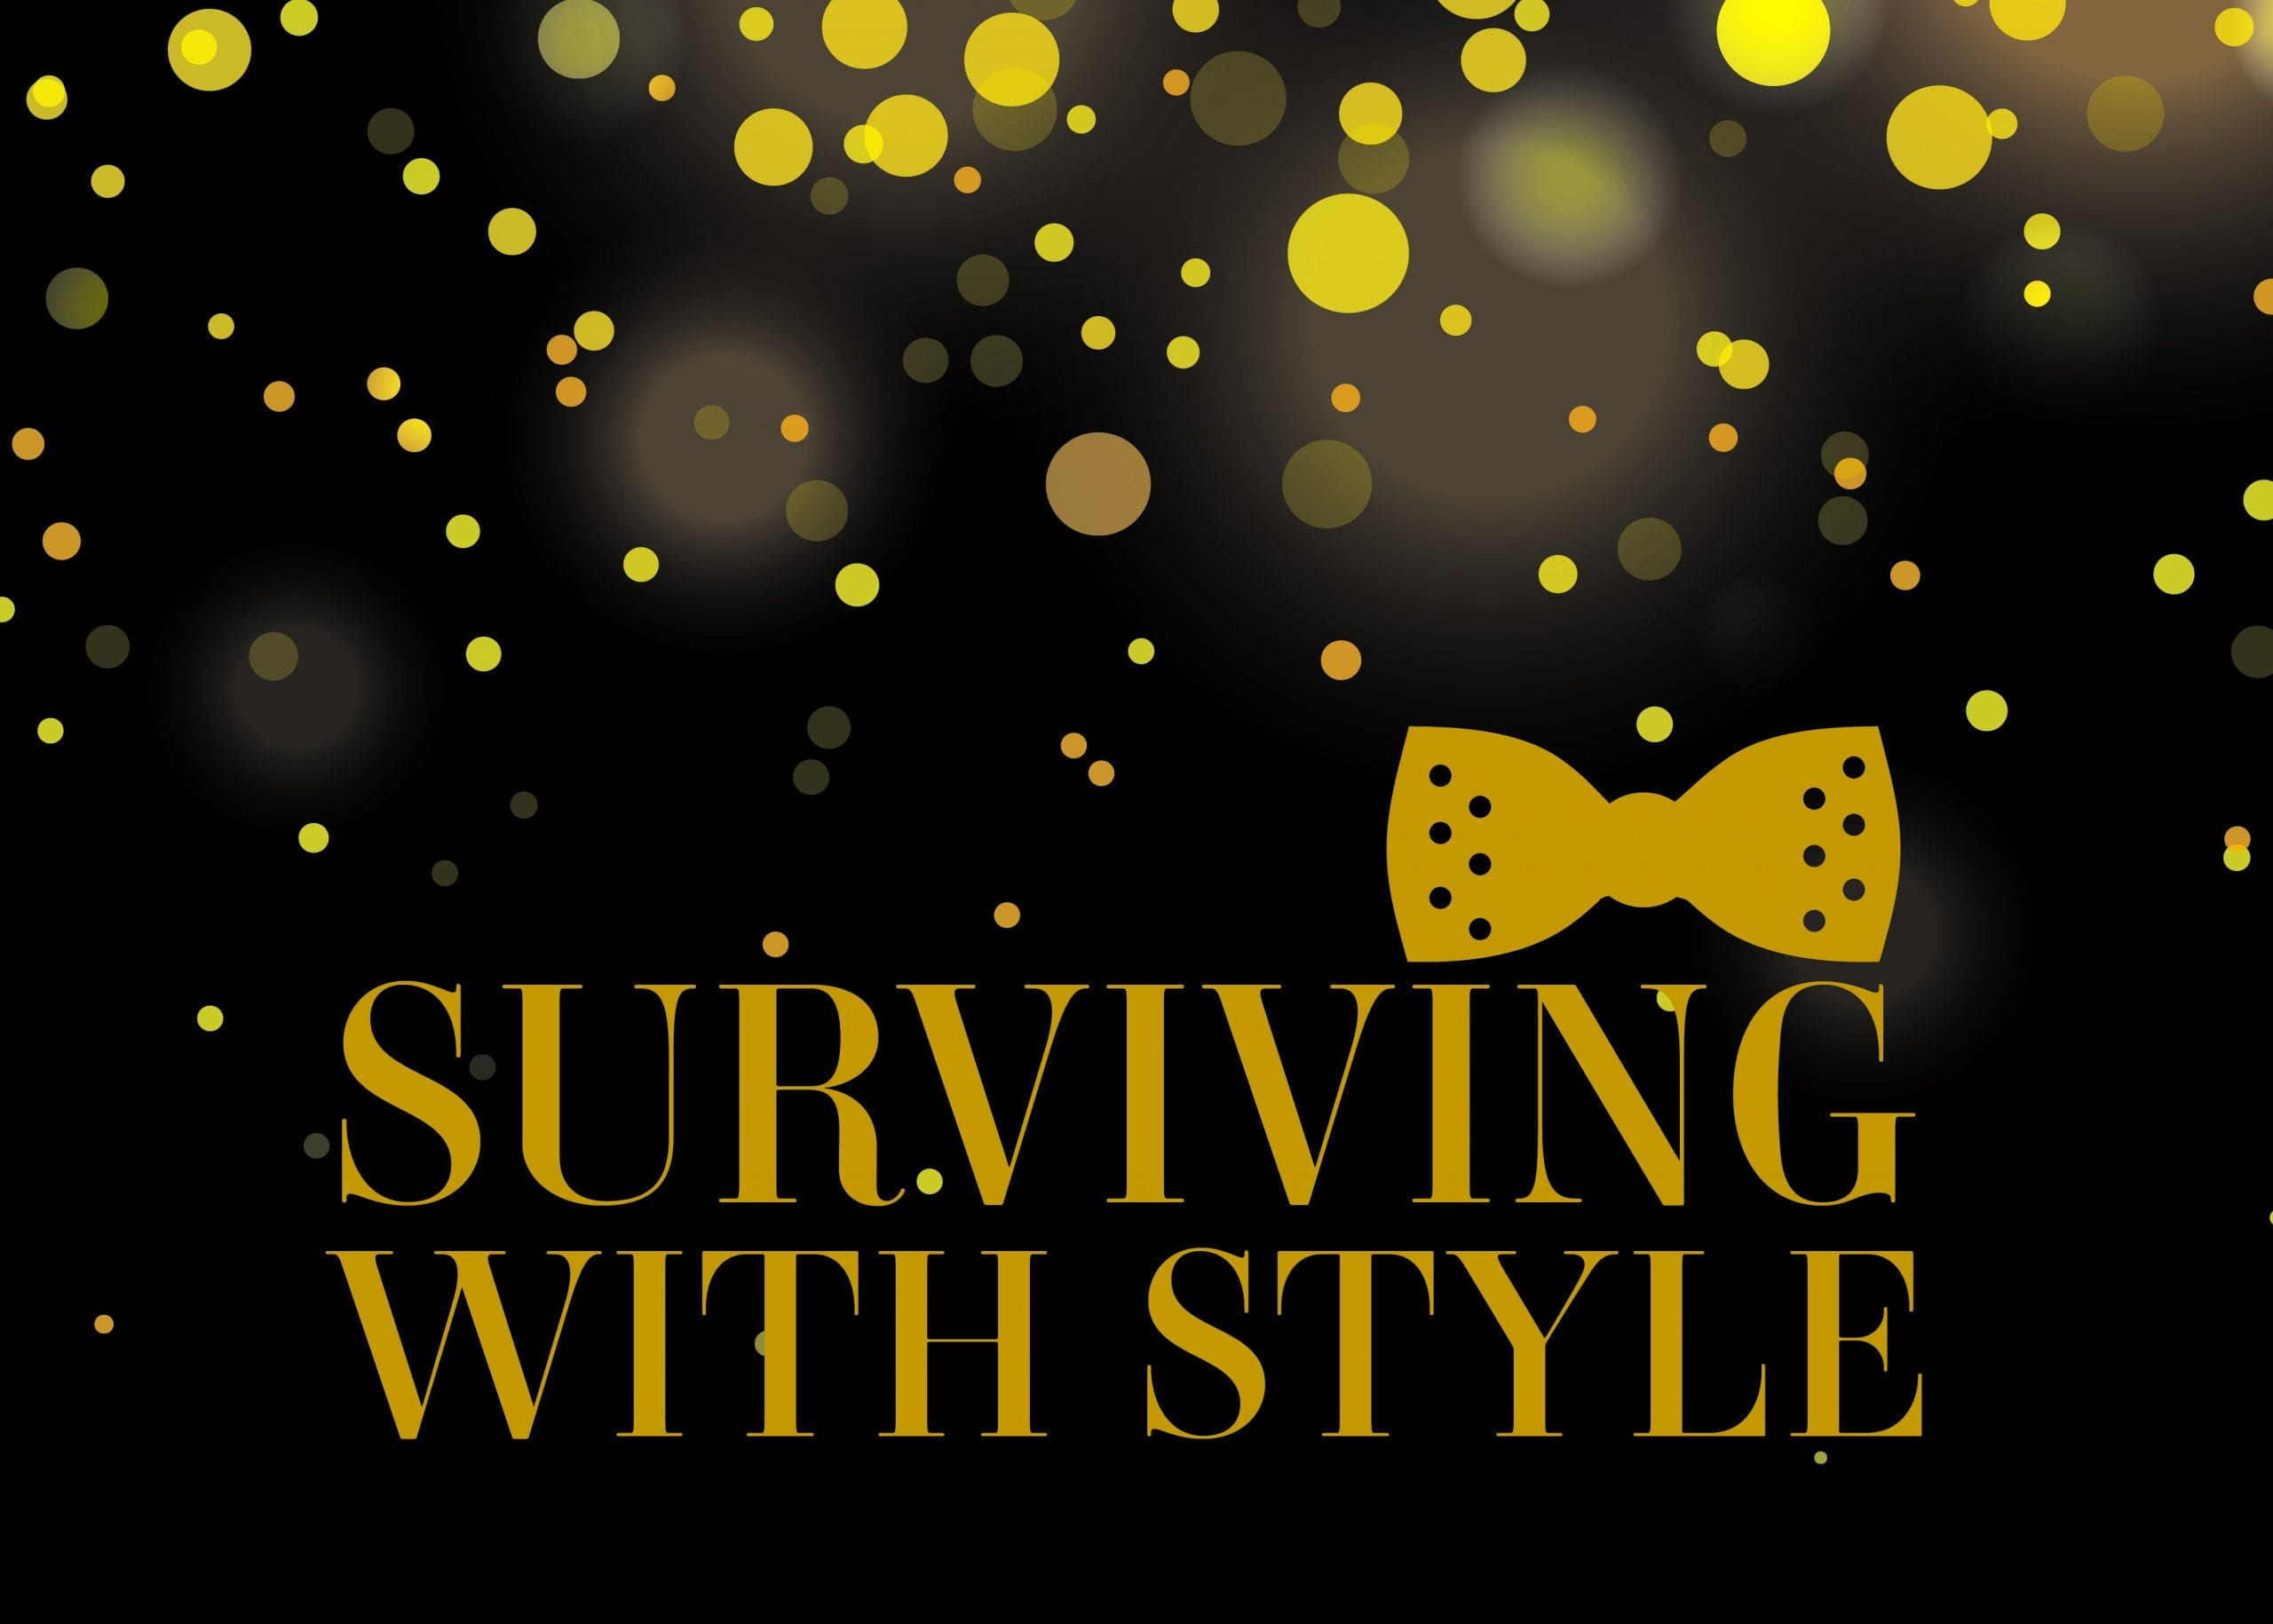 20th Annual Surviving with Style Gala